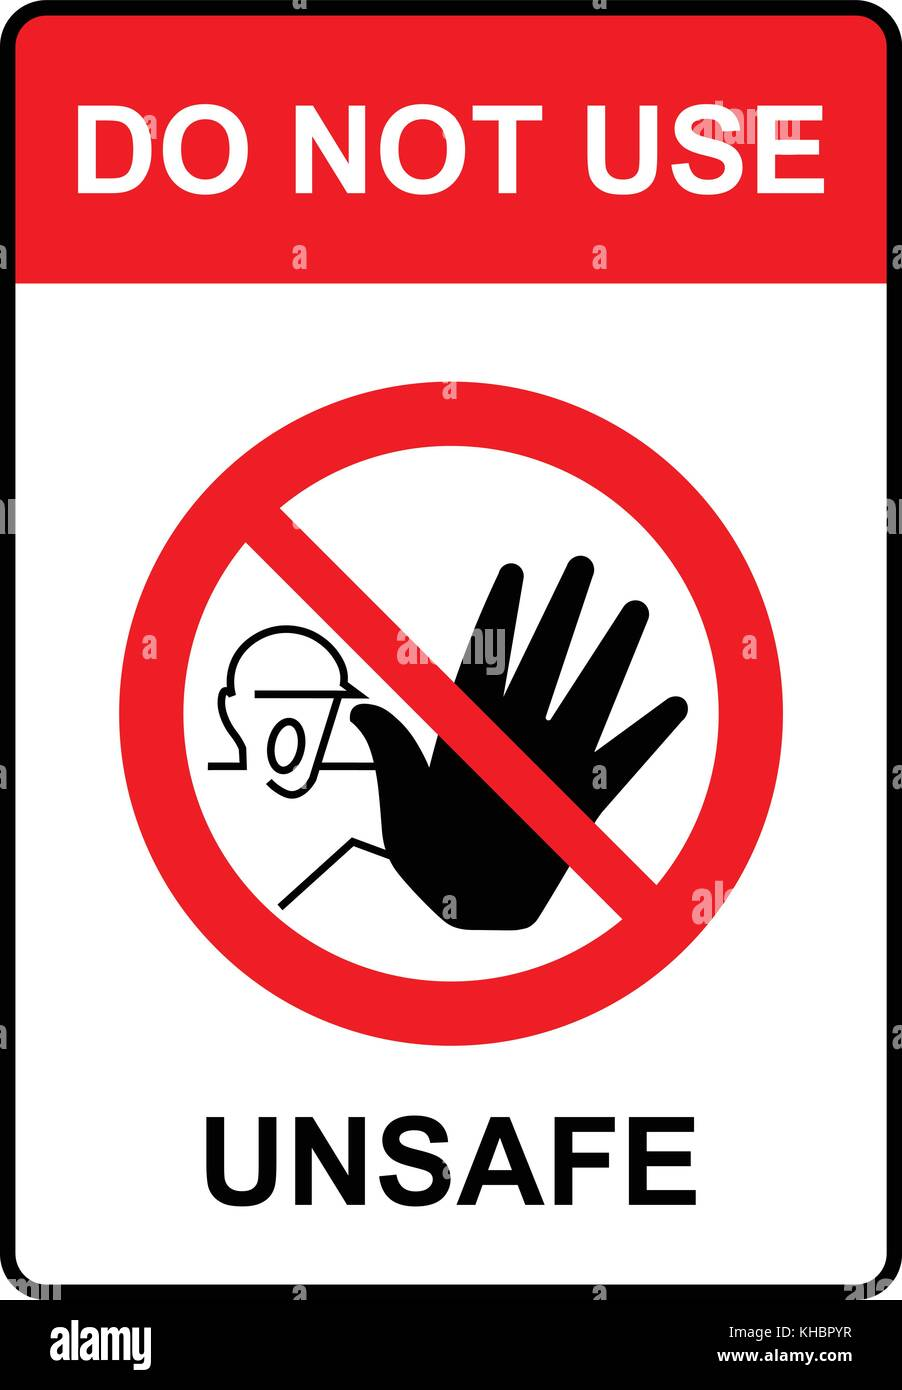 Do not use, unsafe, warning sign, vector illustration. - Stock Vector